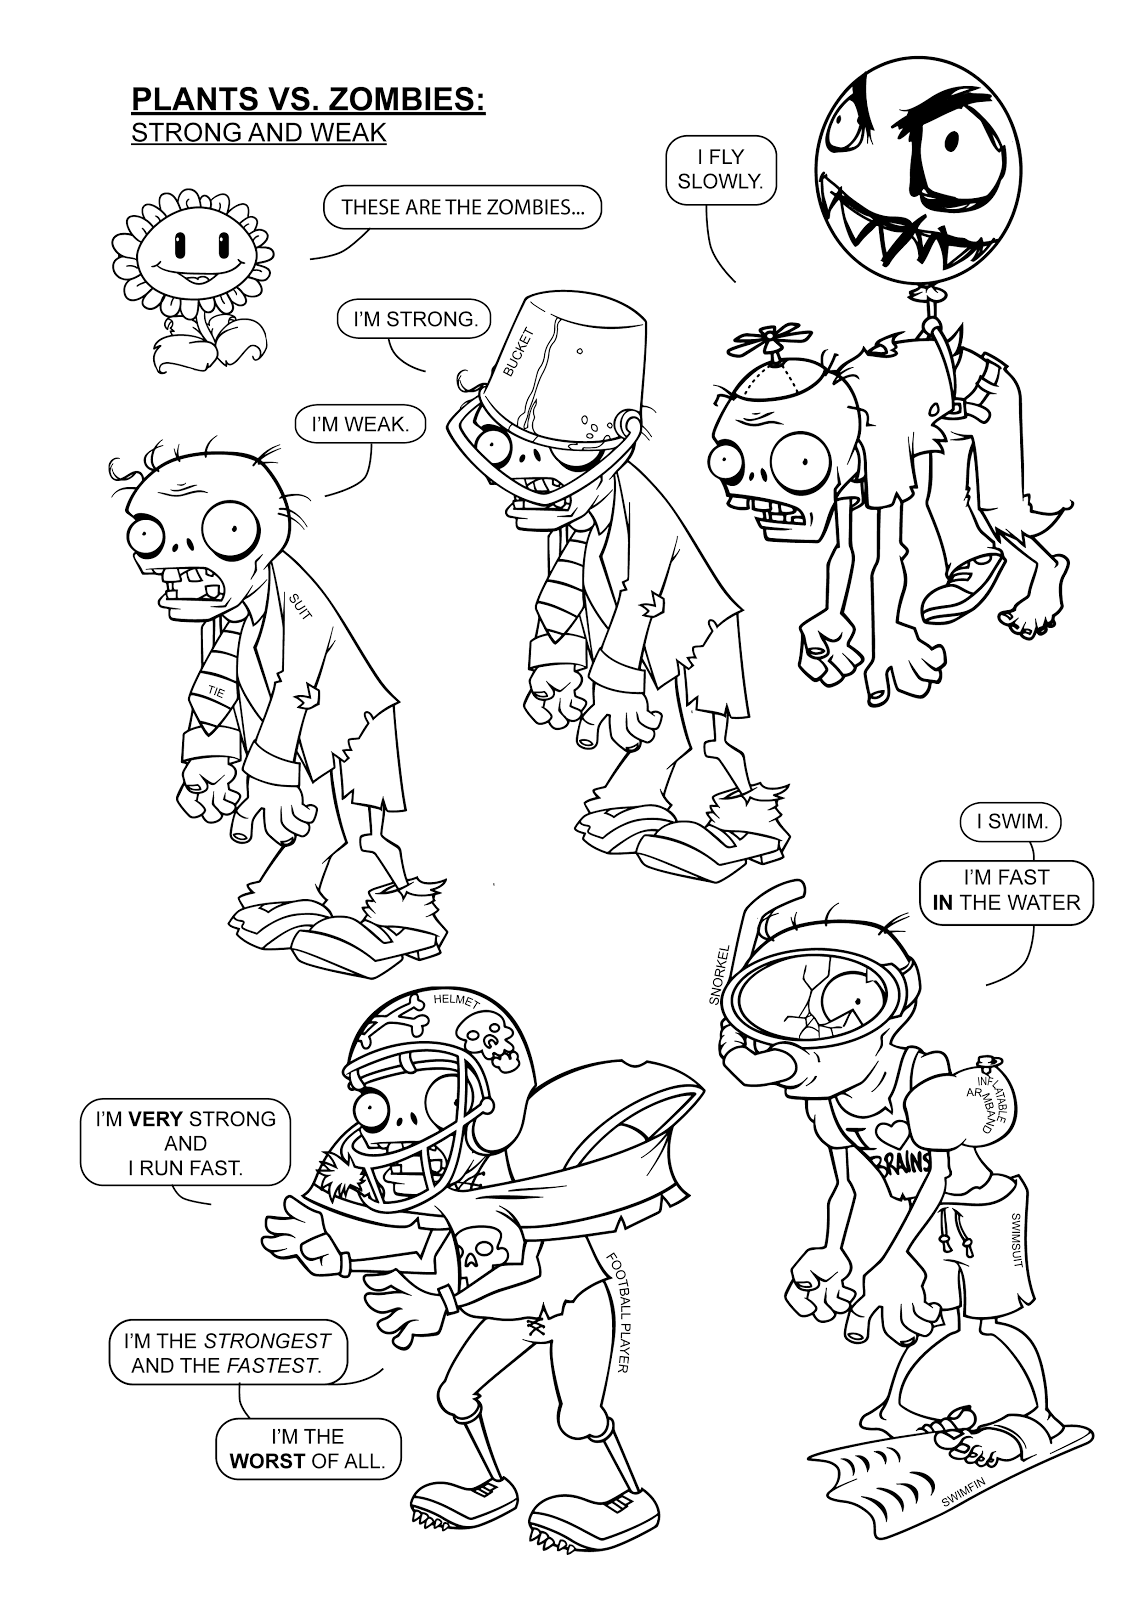 Plants v zombies coloring pages - Plant Vs Zombie Coloring Sheet For Pinterest